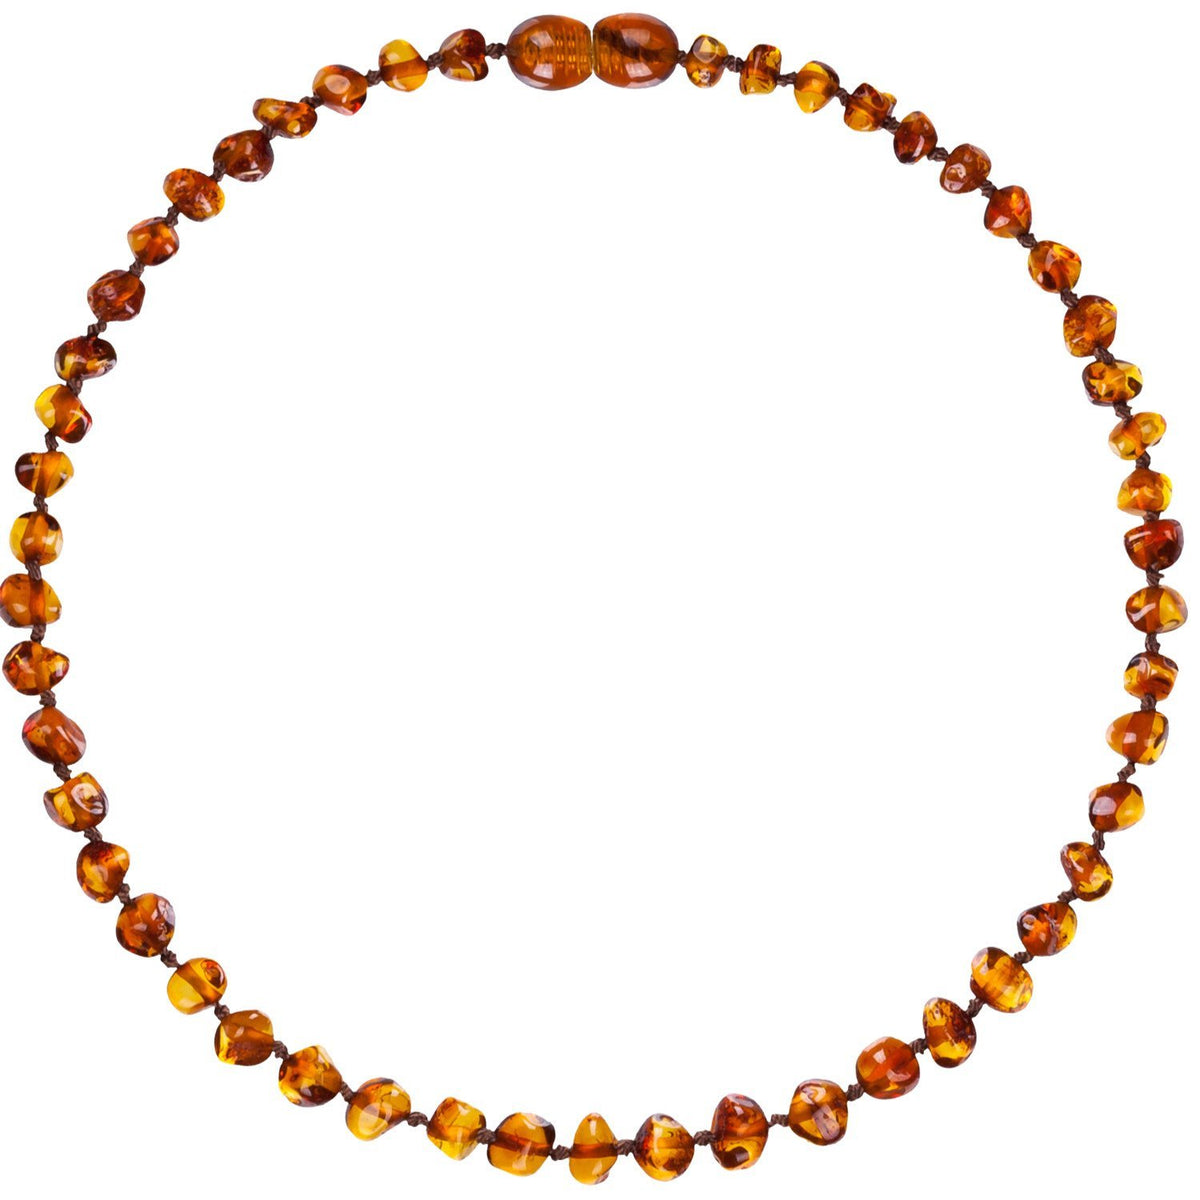 Bud Amber Necklace - Child